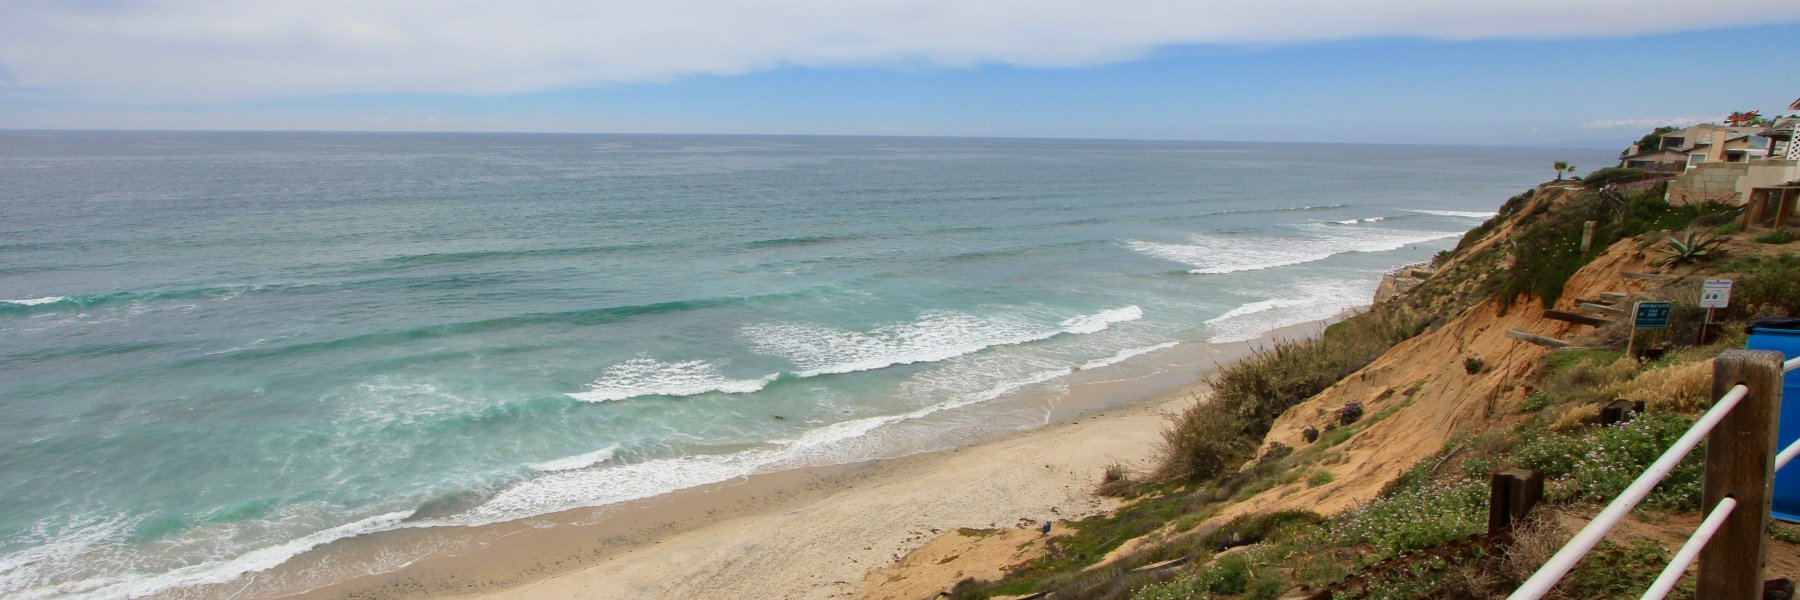 Neptune is a community of homes in Encinitas California